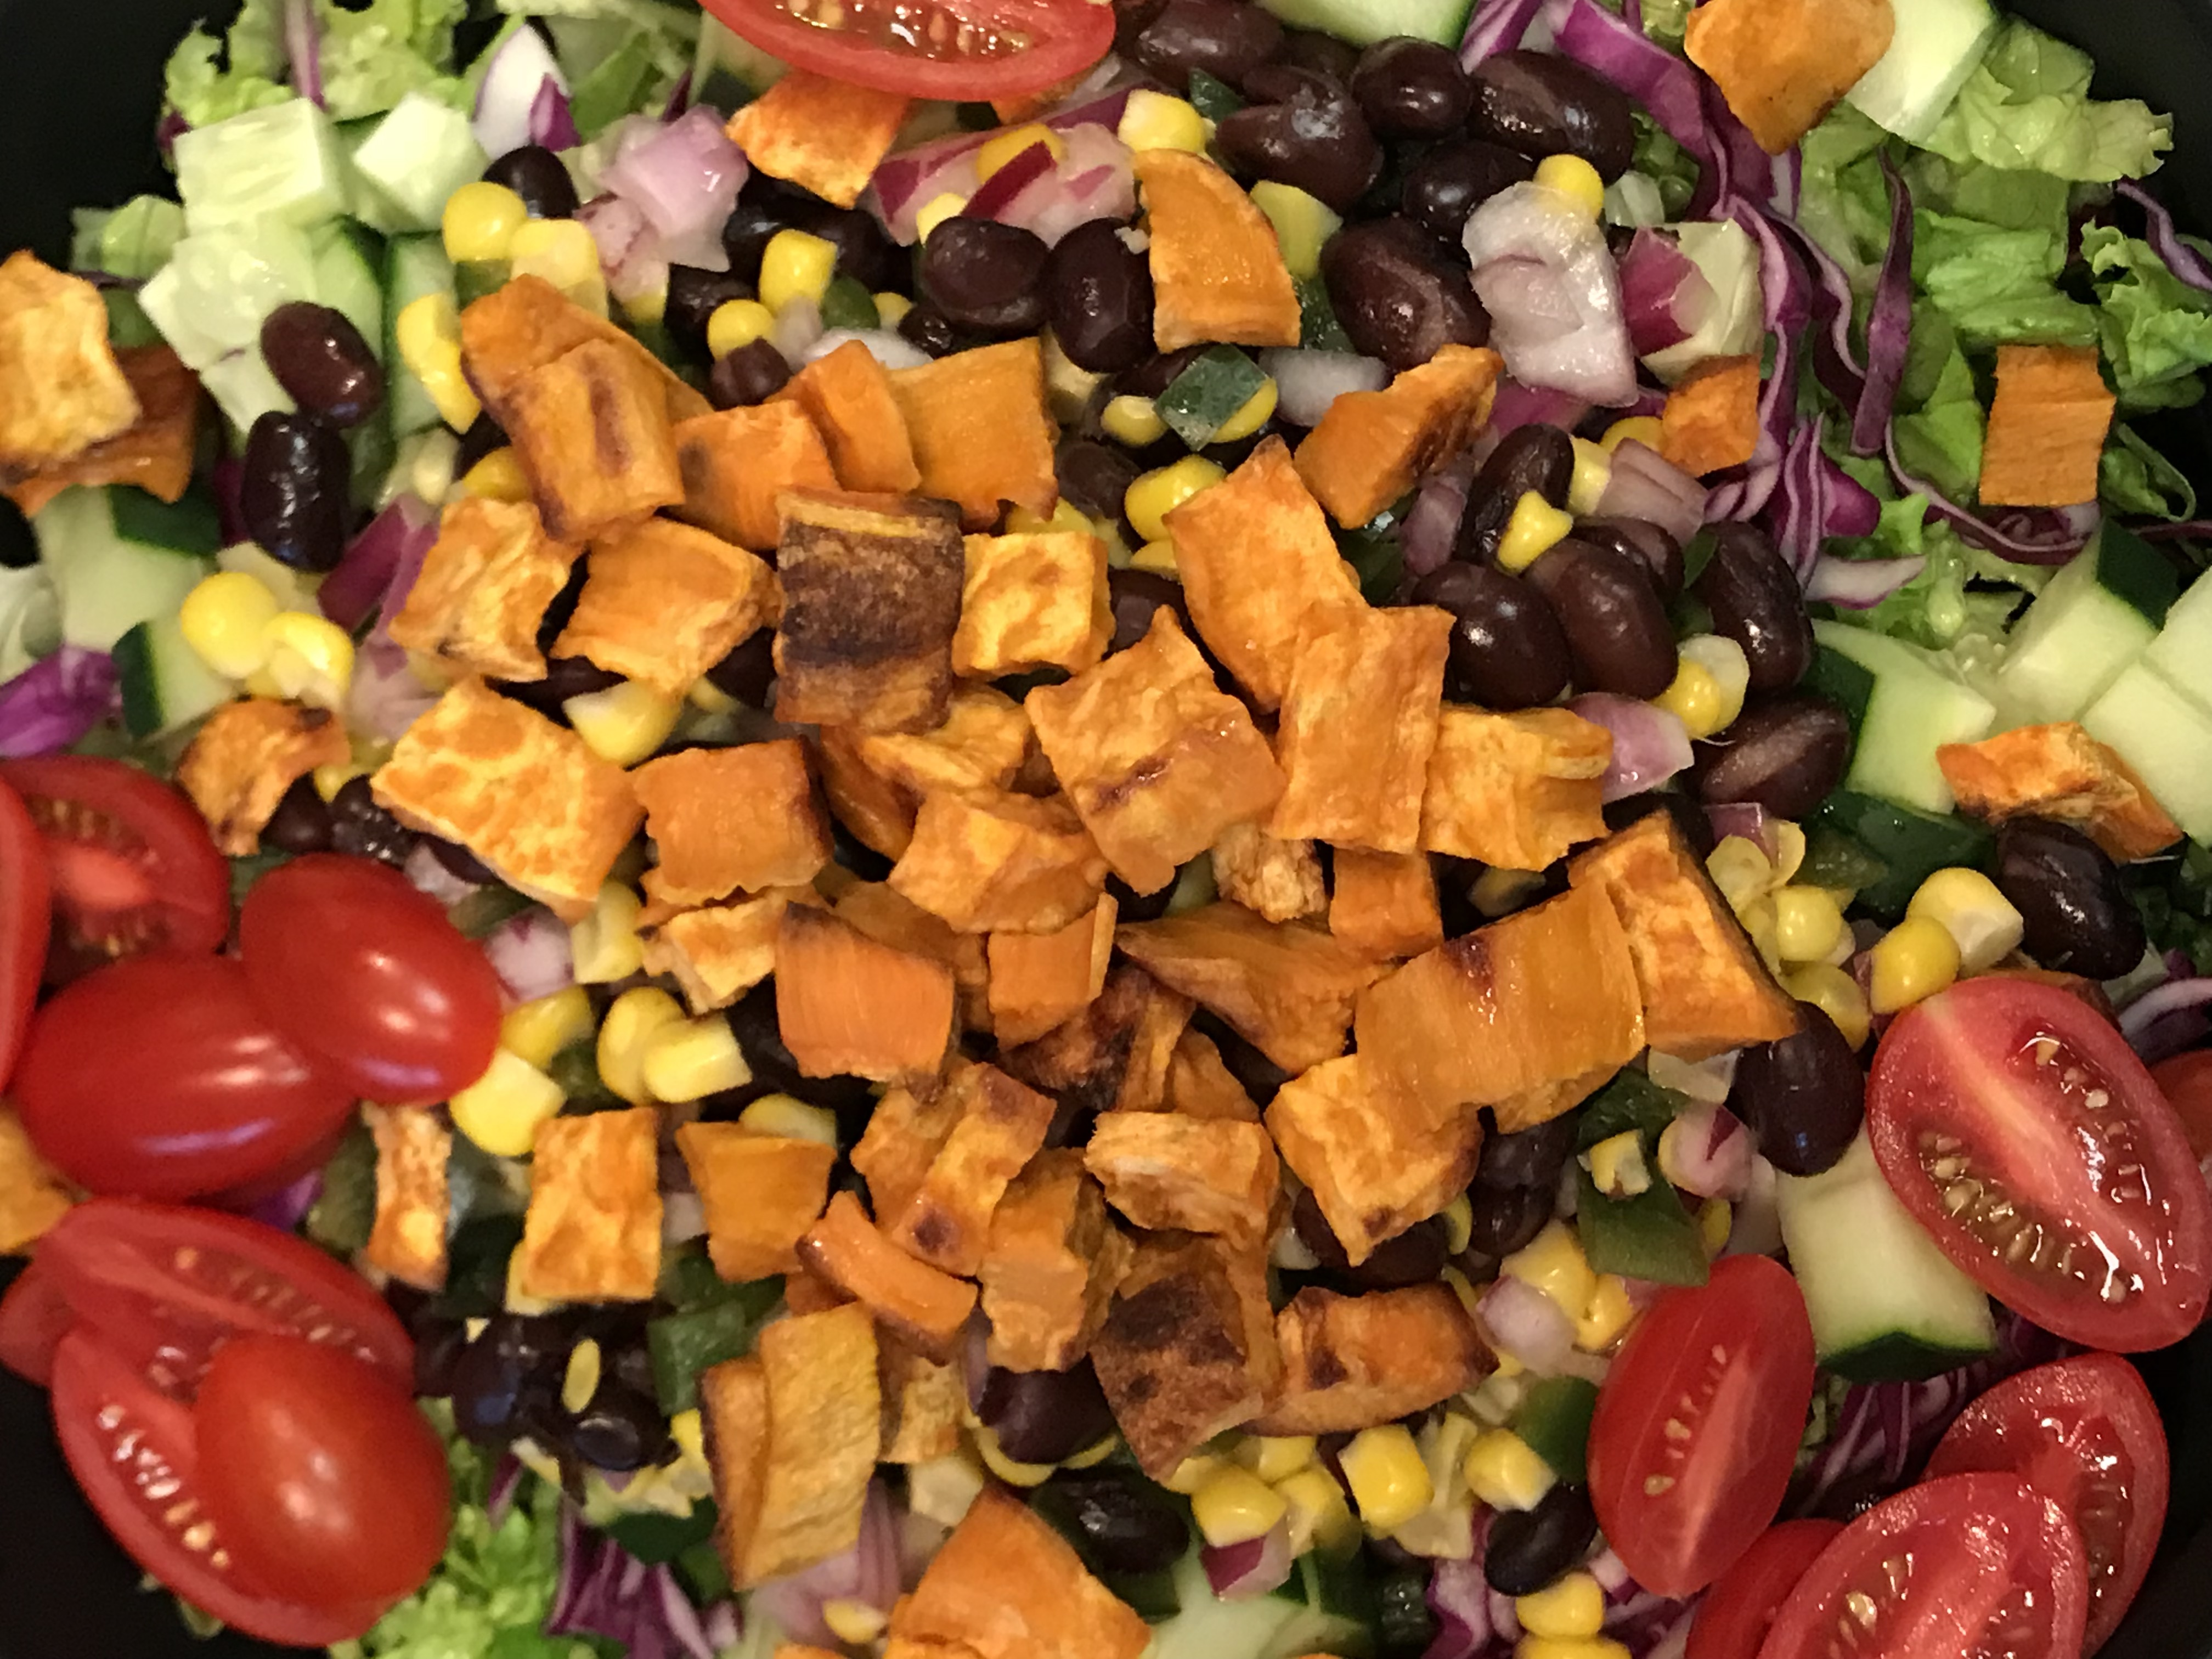 Roasted sweet potatoes with corn salsa, black beans, red cabbage, kale, grape tomatoes, cucumbers, and a light housemade vinaigrette. Get filled with all of the good stuff!